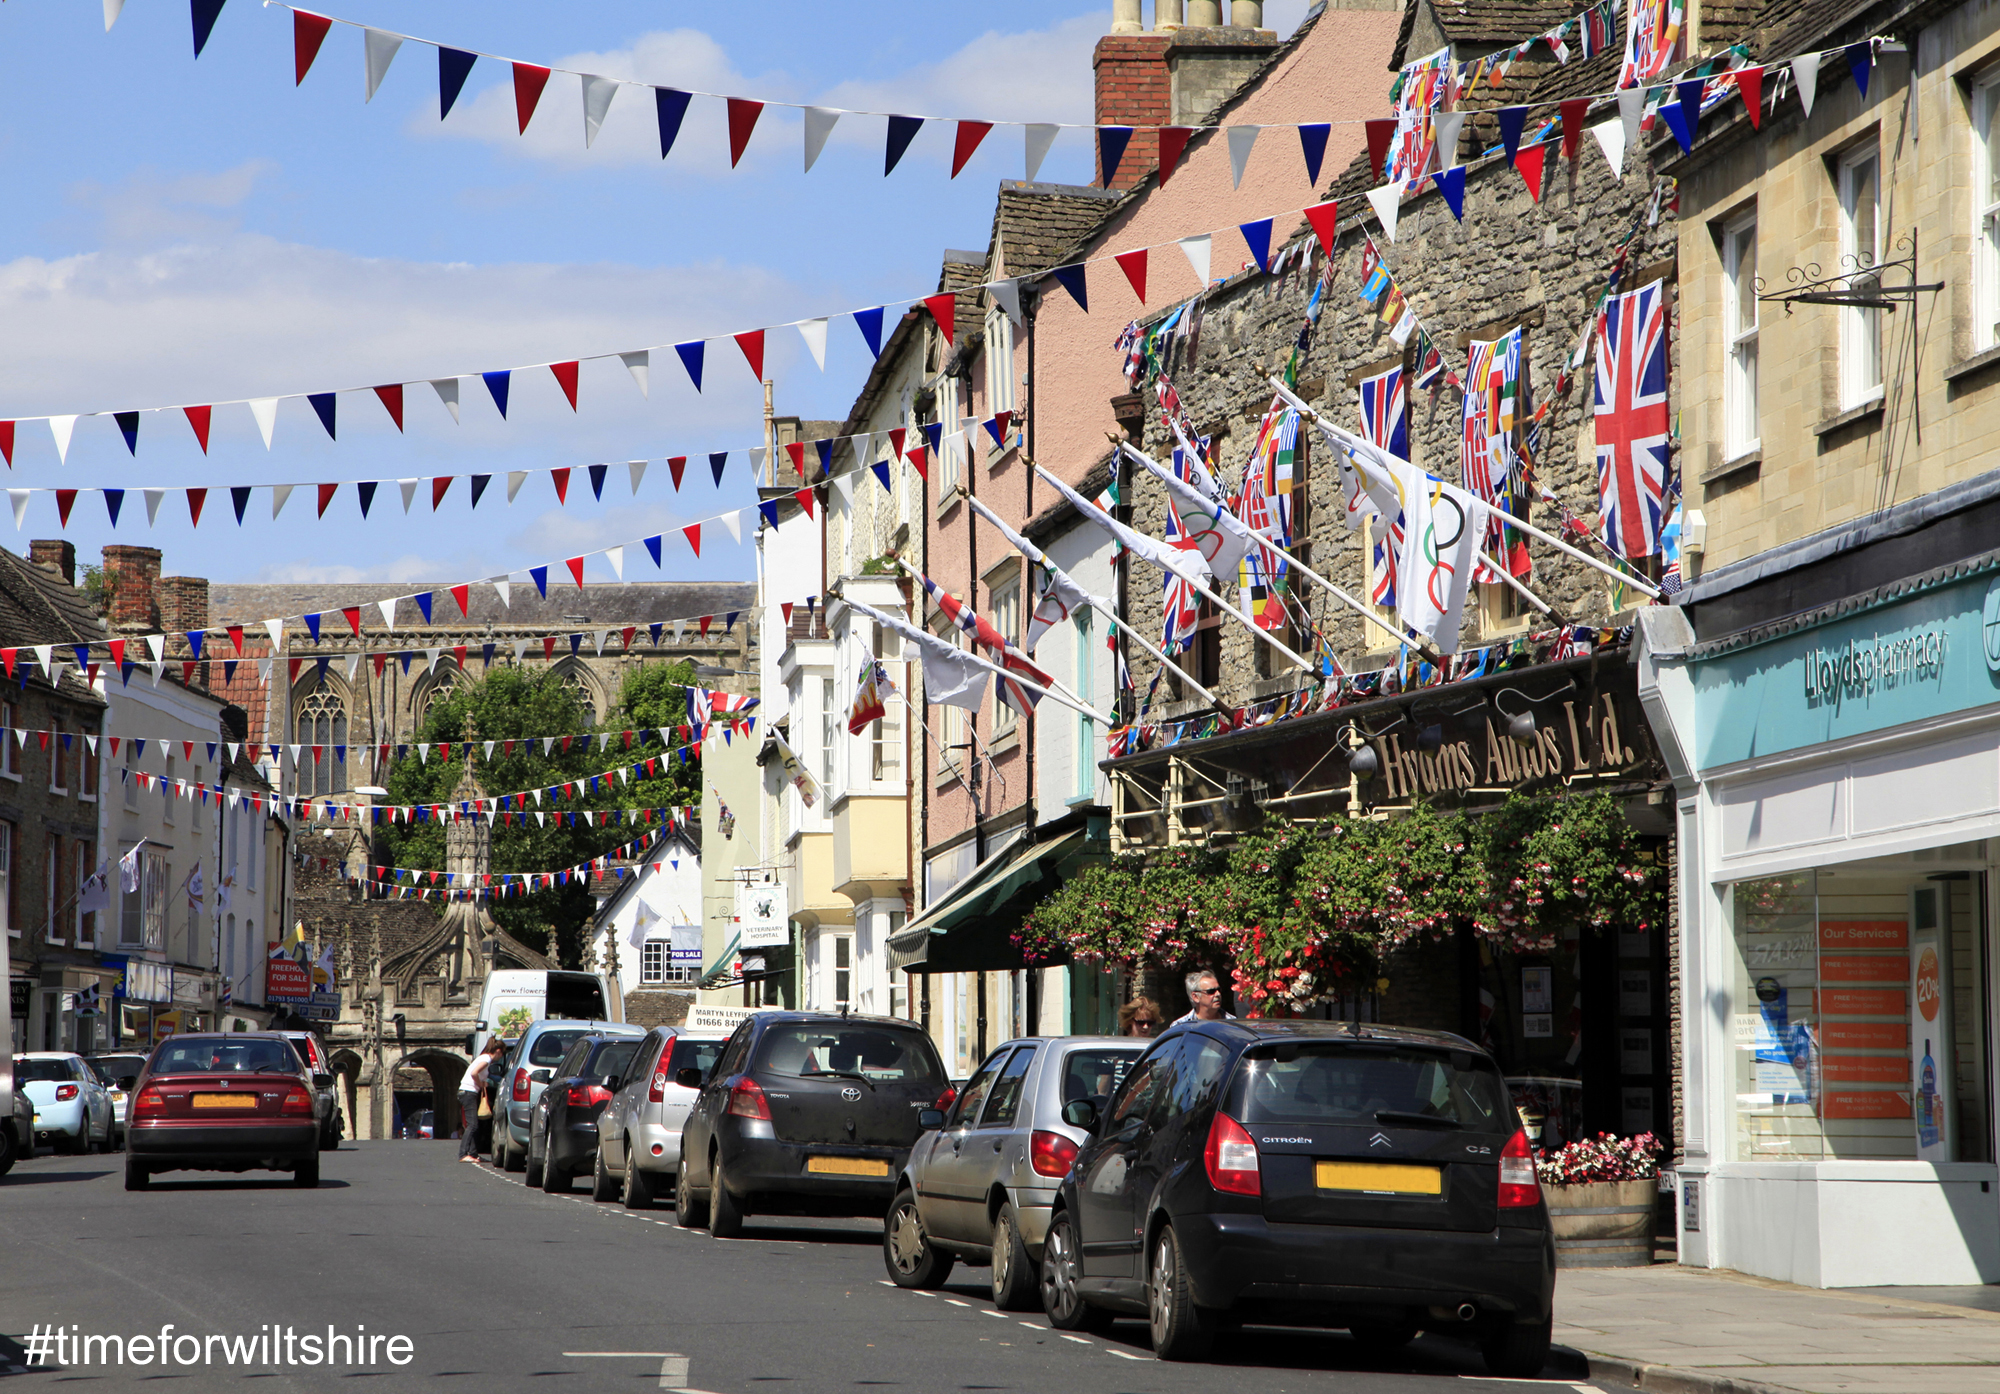 Shopping street with bunting flying Malmesbury © www.visitwiltshire.co.uk